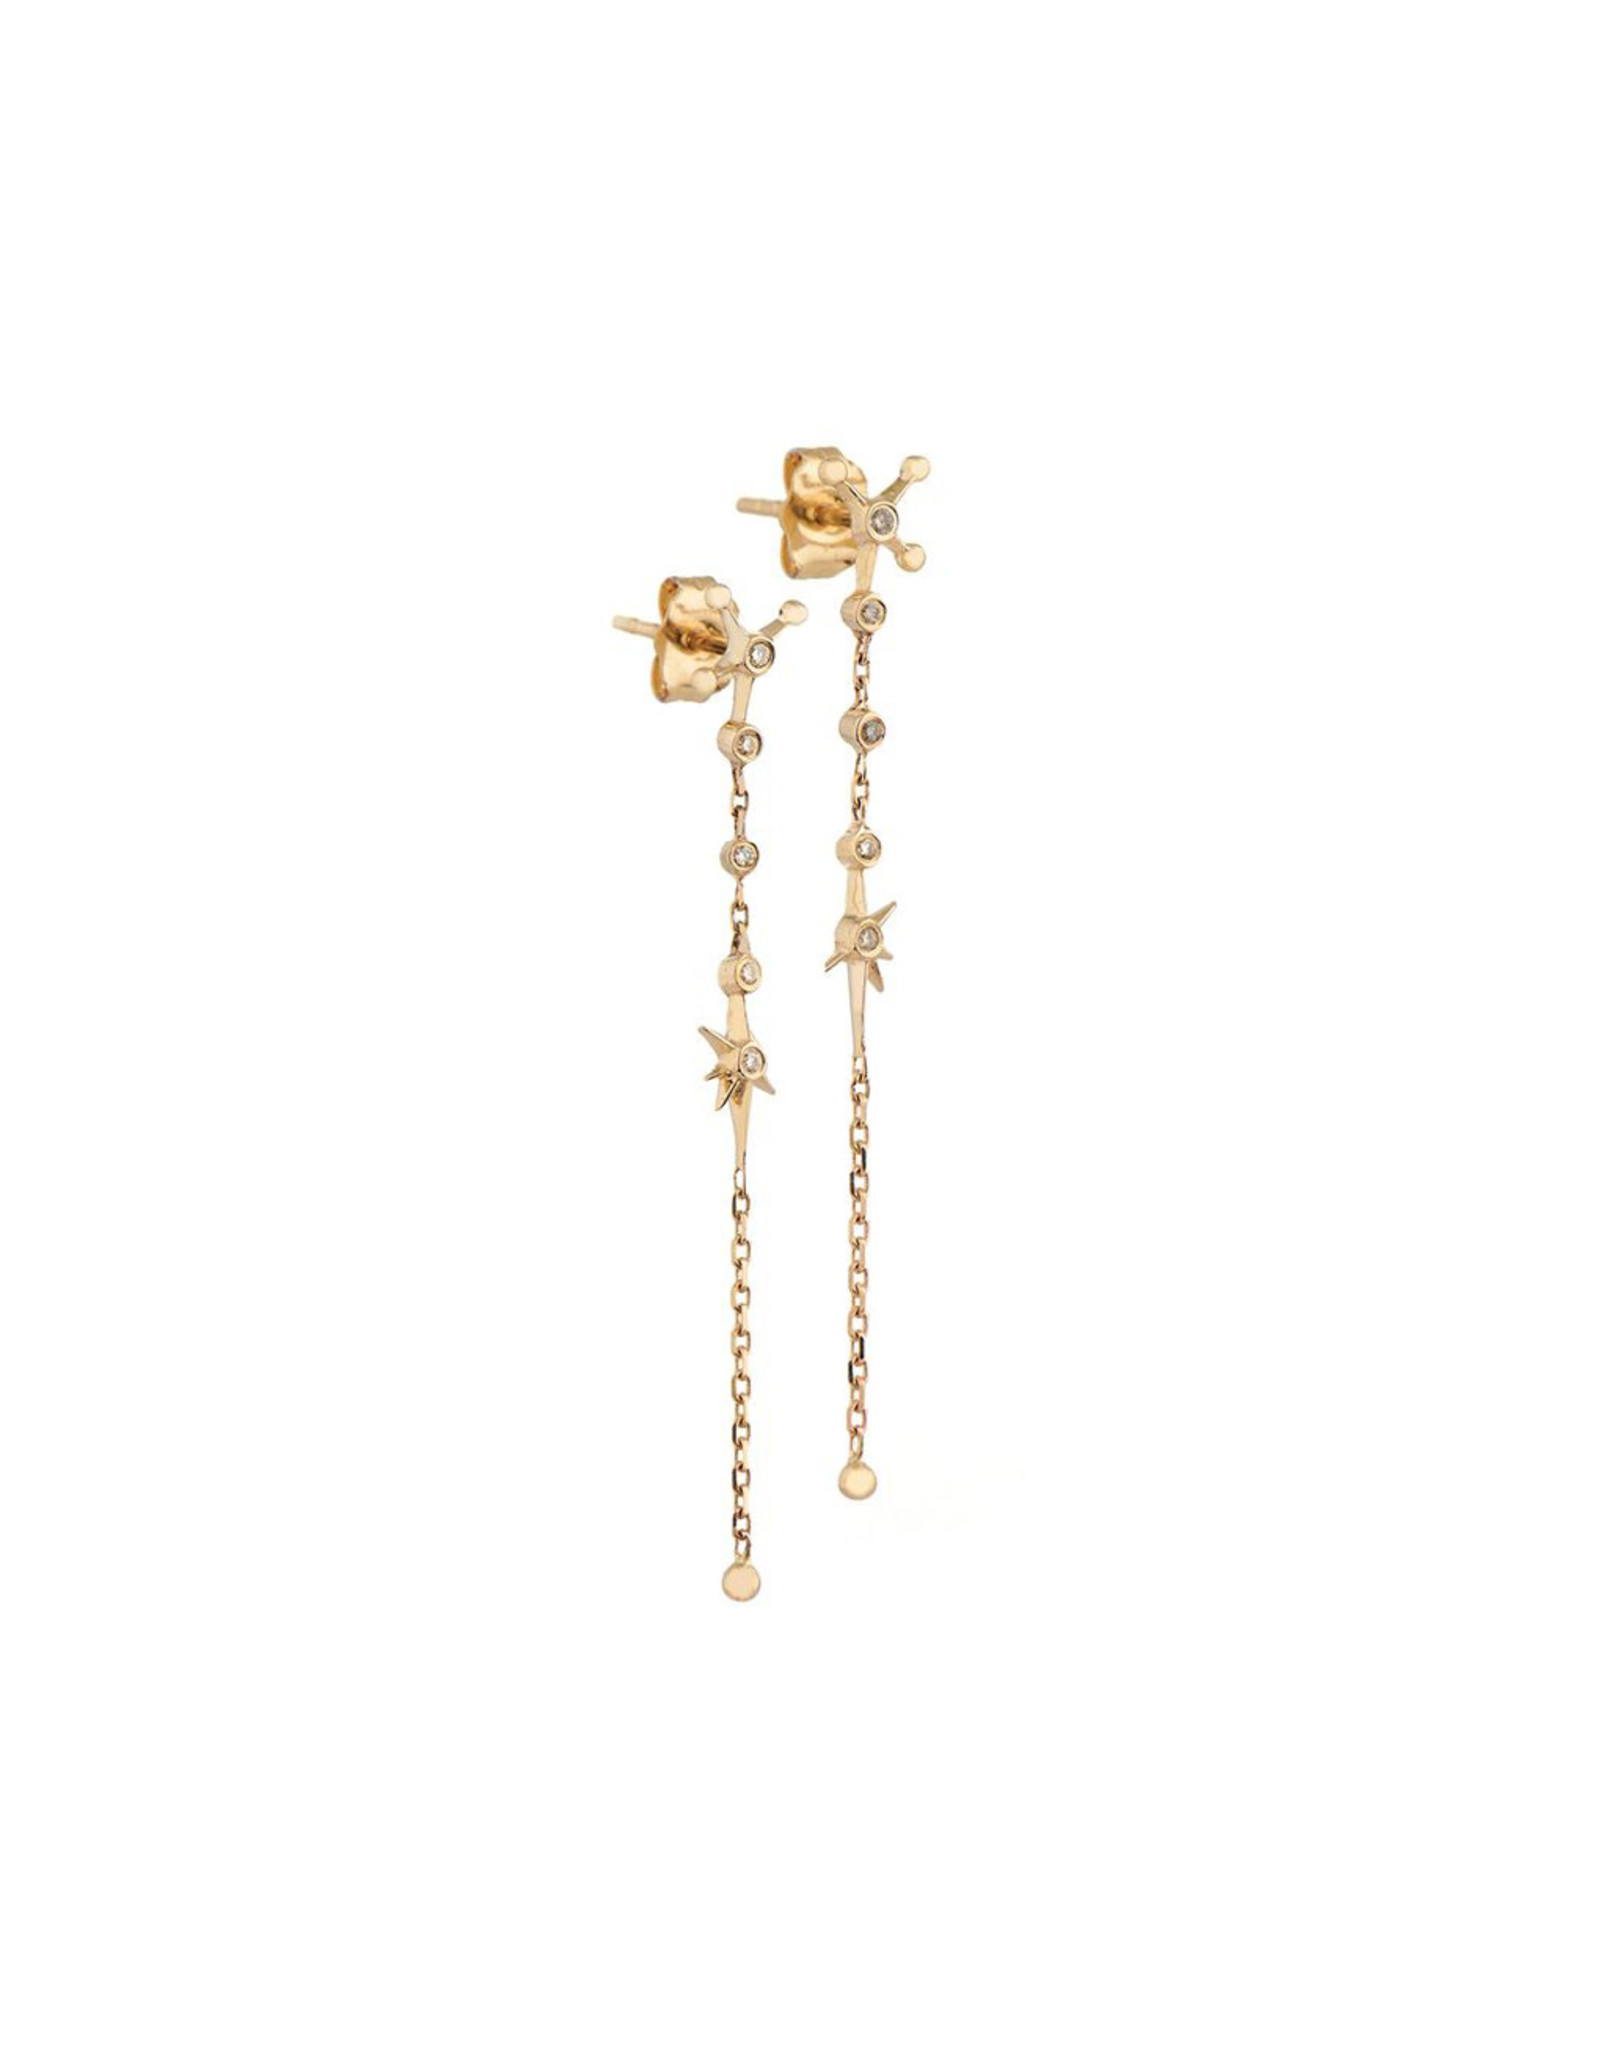 Celine Daoust Diamond Constellation Chain Earrings